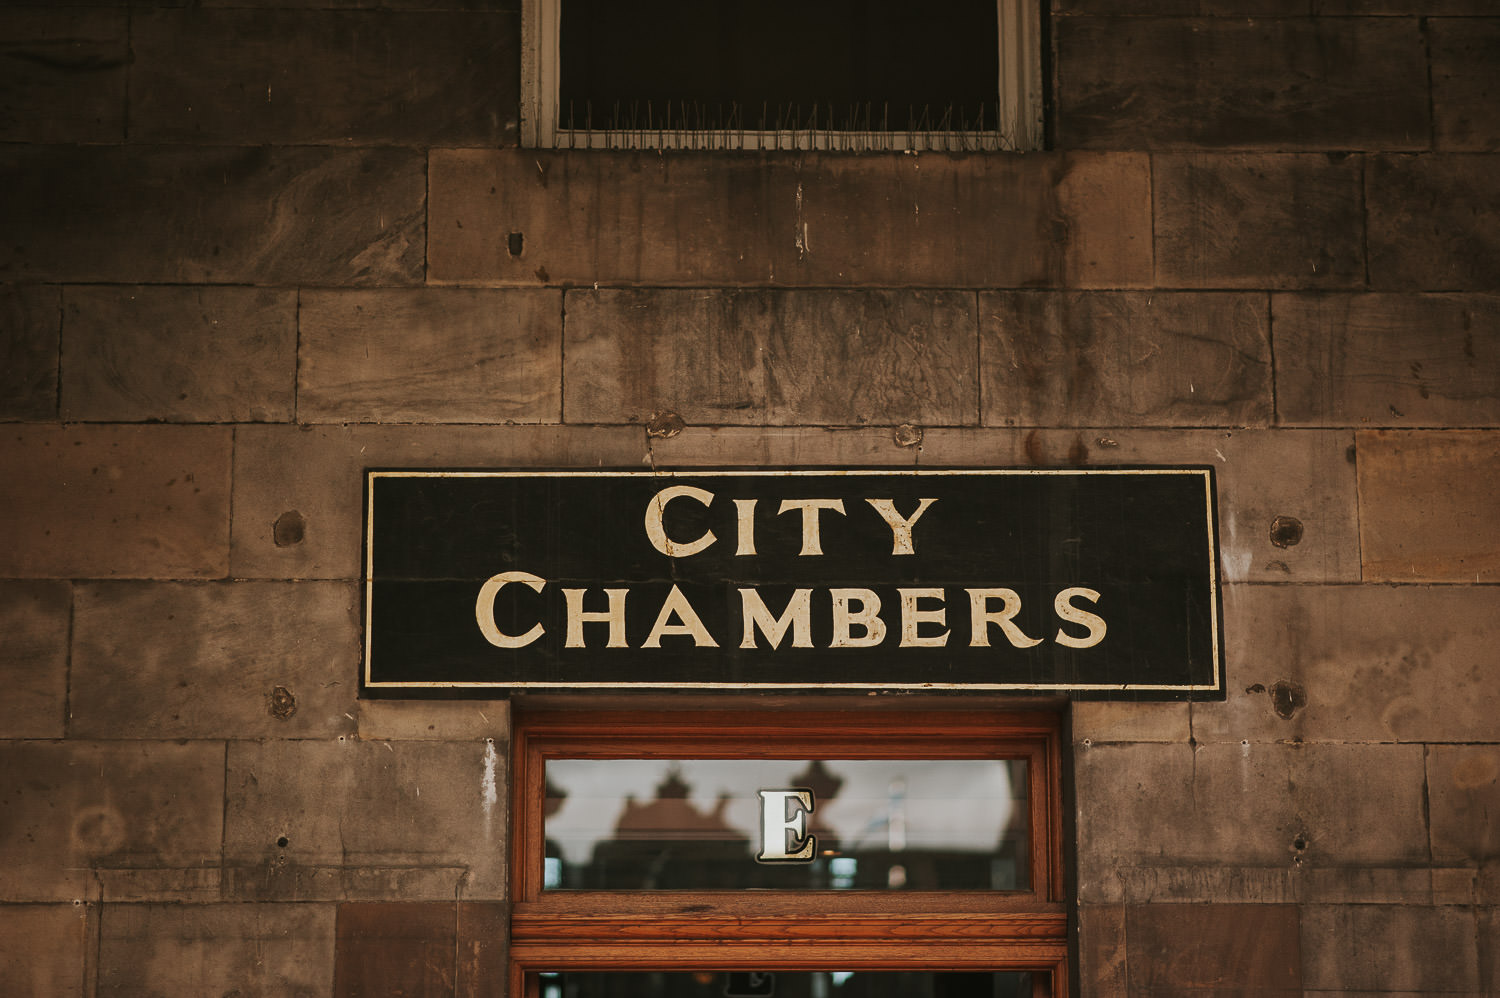 entrance sign for Edingburgh City Chambers